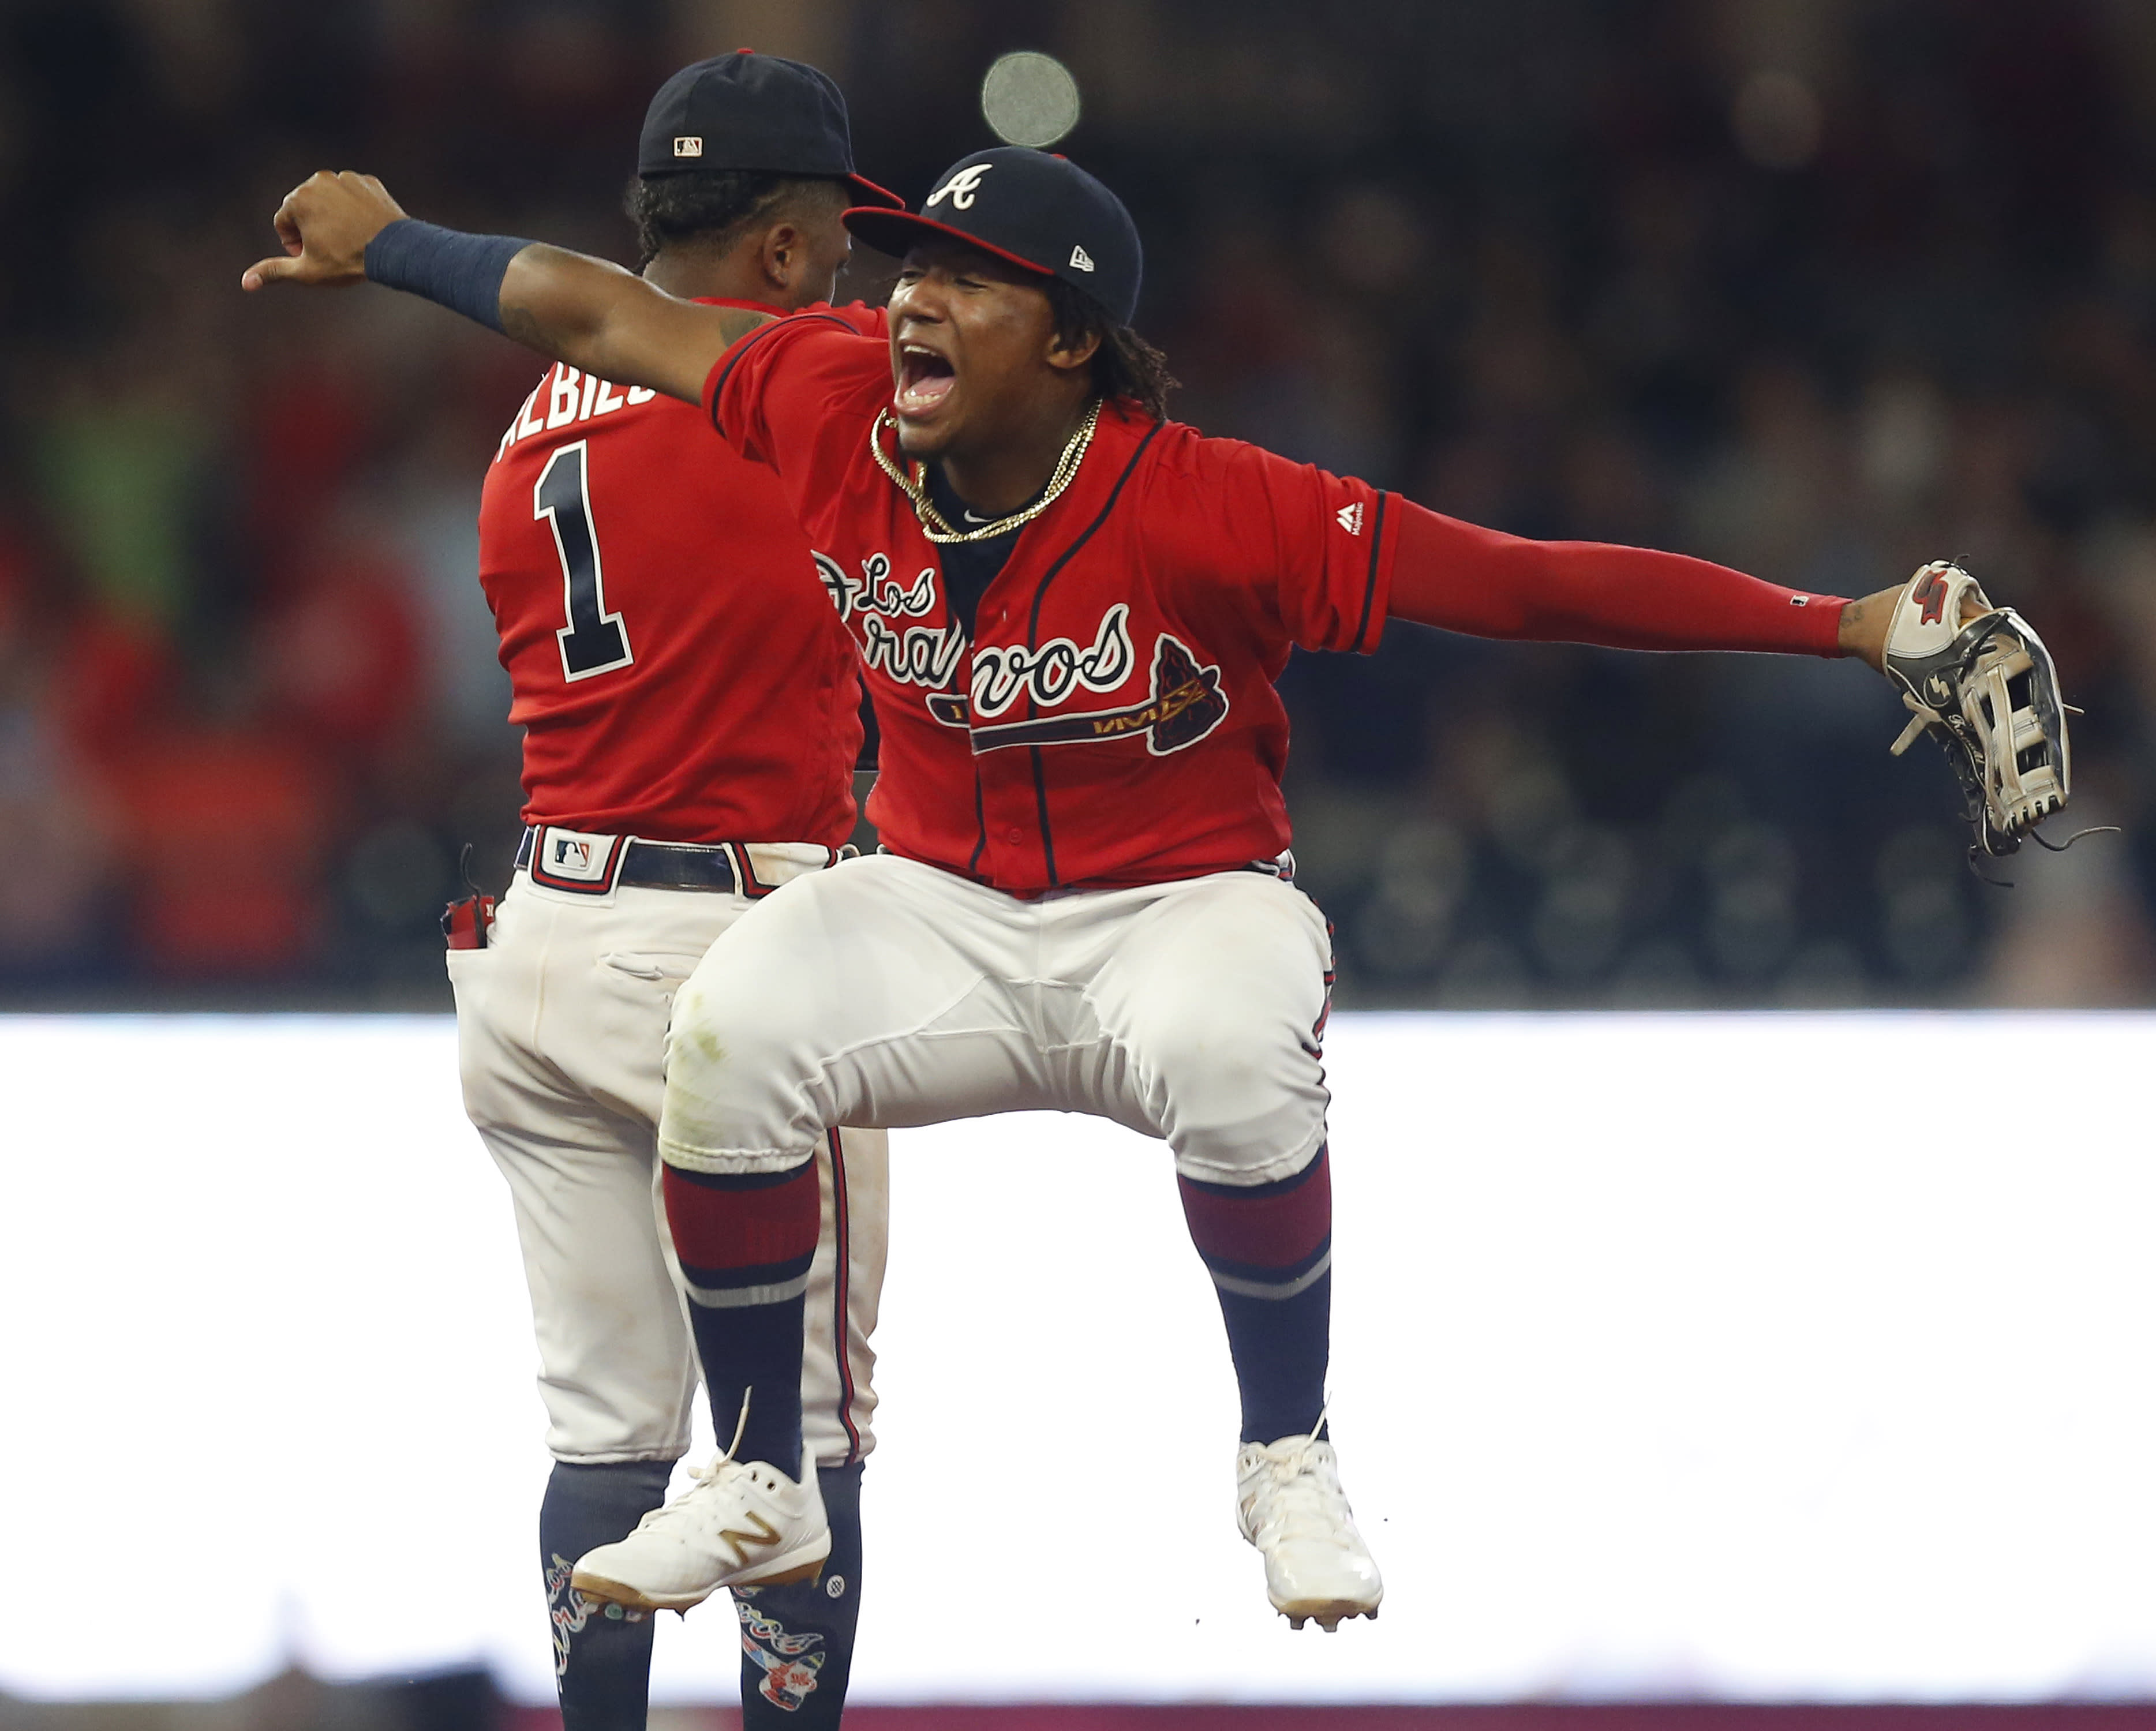 MLB Magic Number watch: Braves, Dodgers, Yankees, Astros